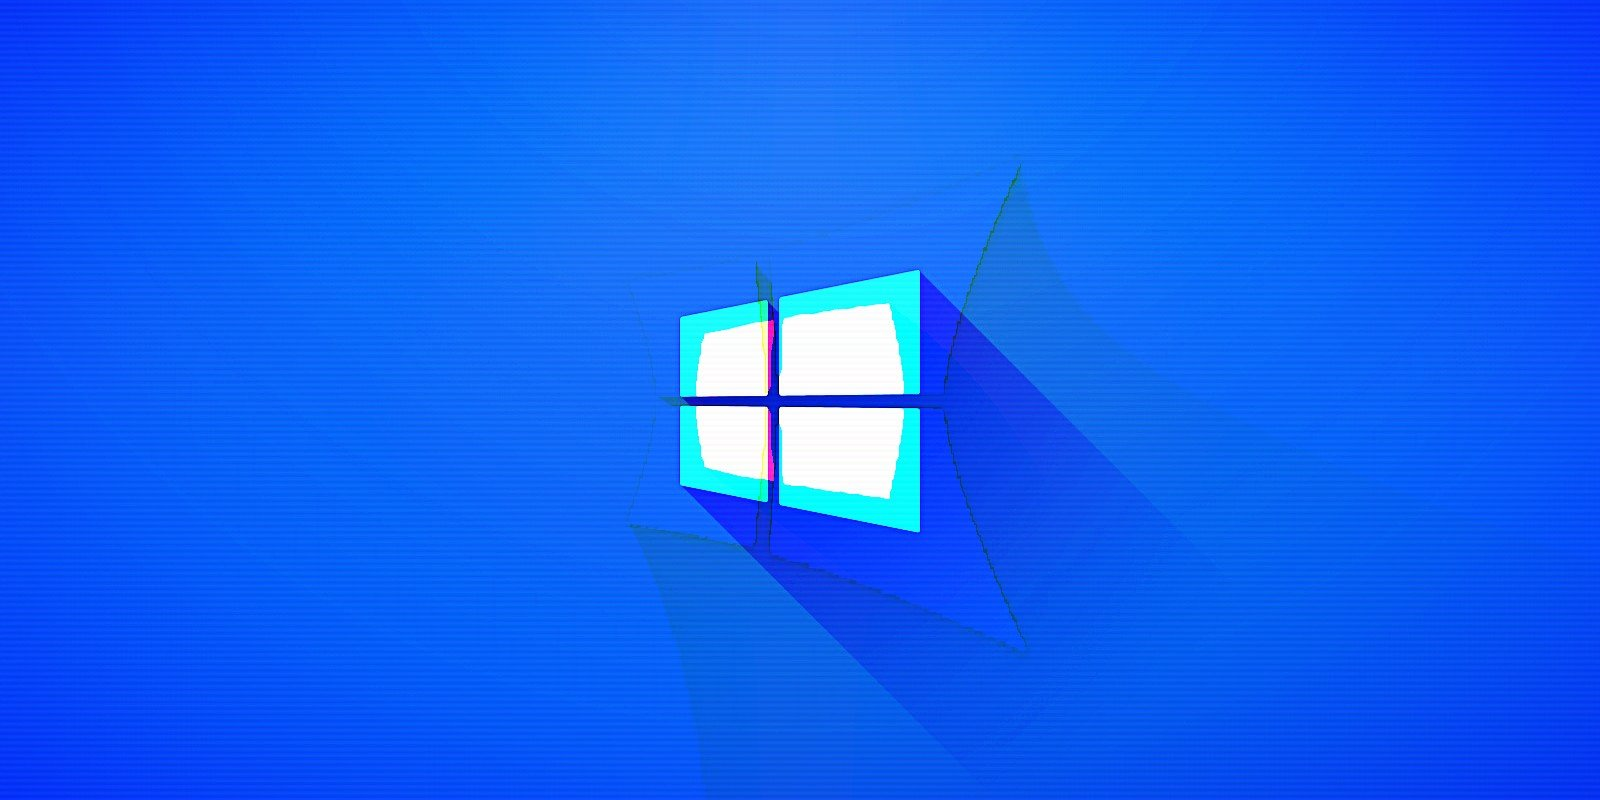 Microsoft fixes Windows 10 issue behind displays going black